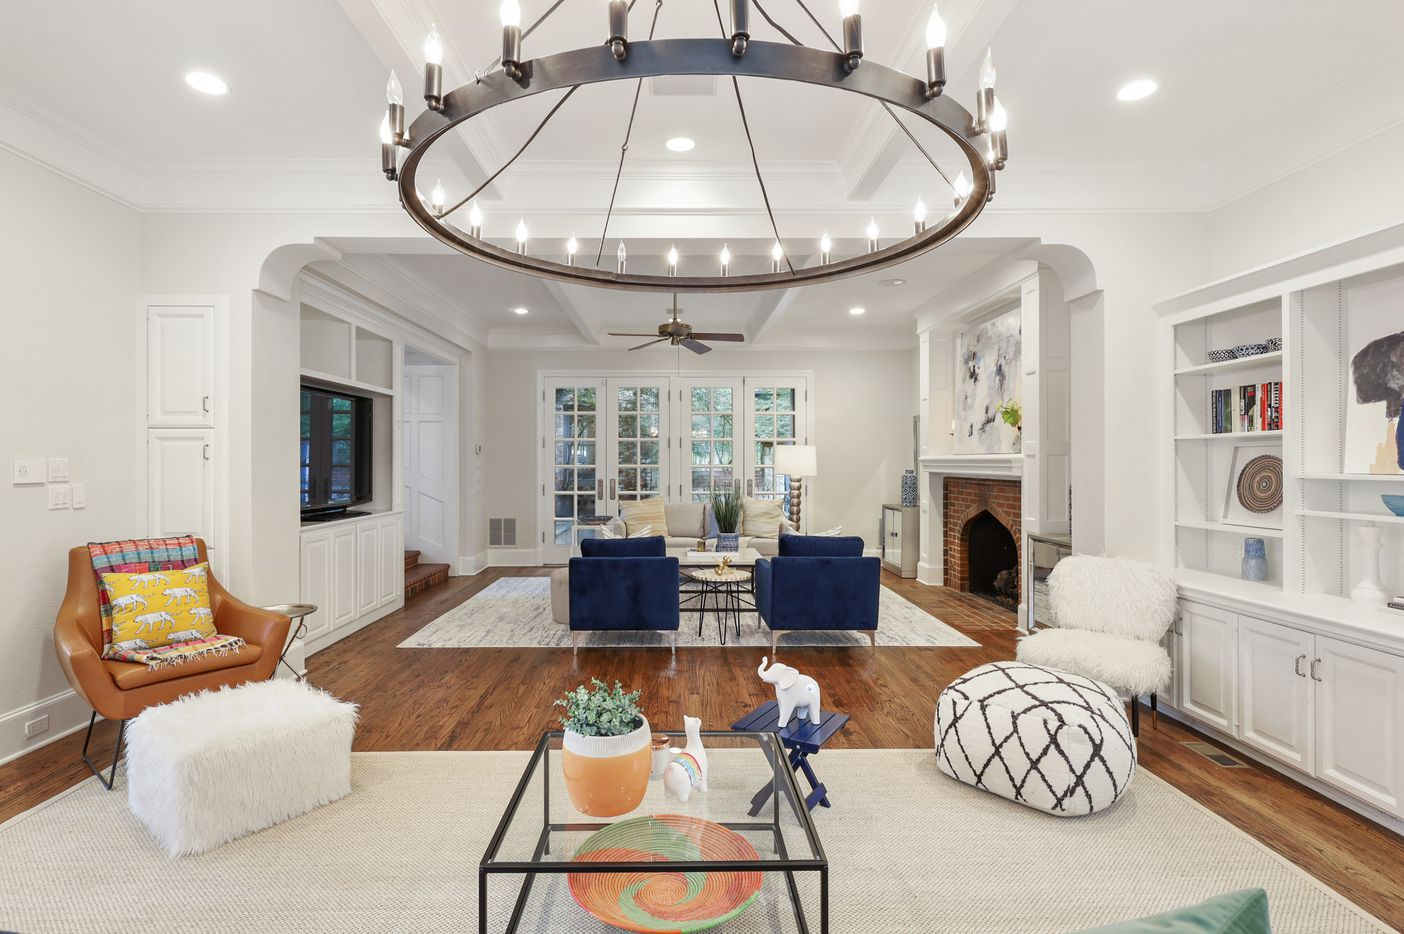 Take a look at the home at 6918 Tokalon Drive in Dallas.